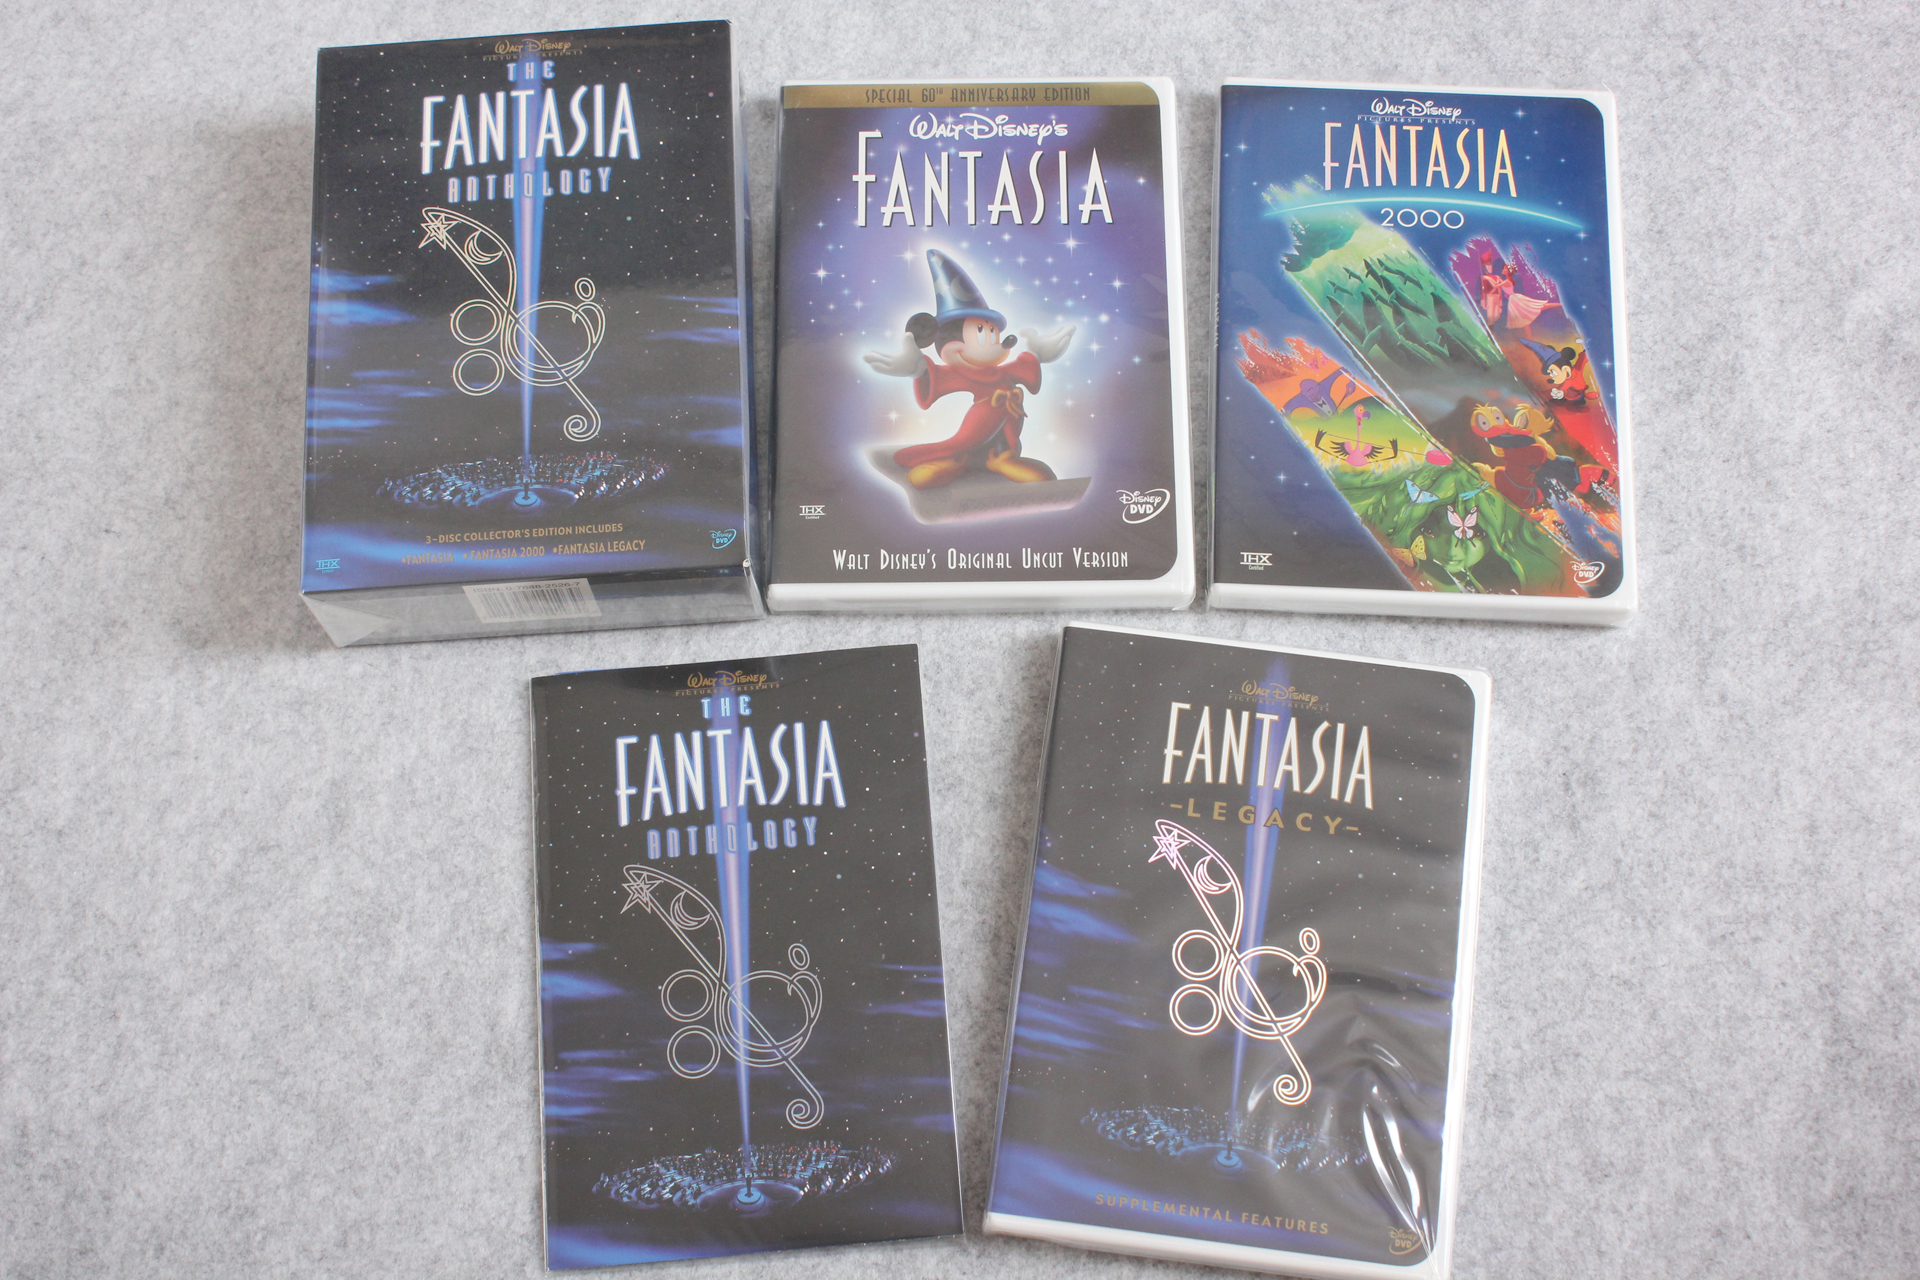 2019-07-11-FANTASIA_US-DVD-BOX.JPG